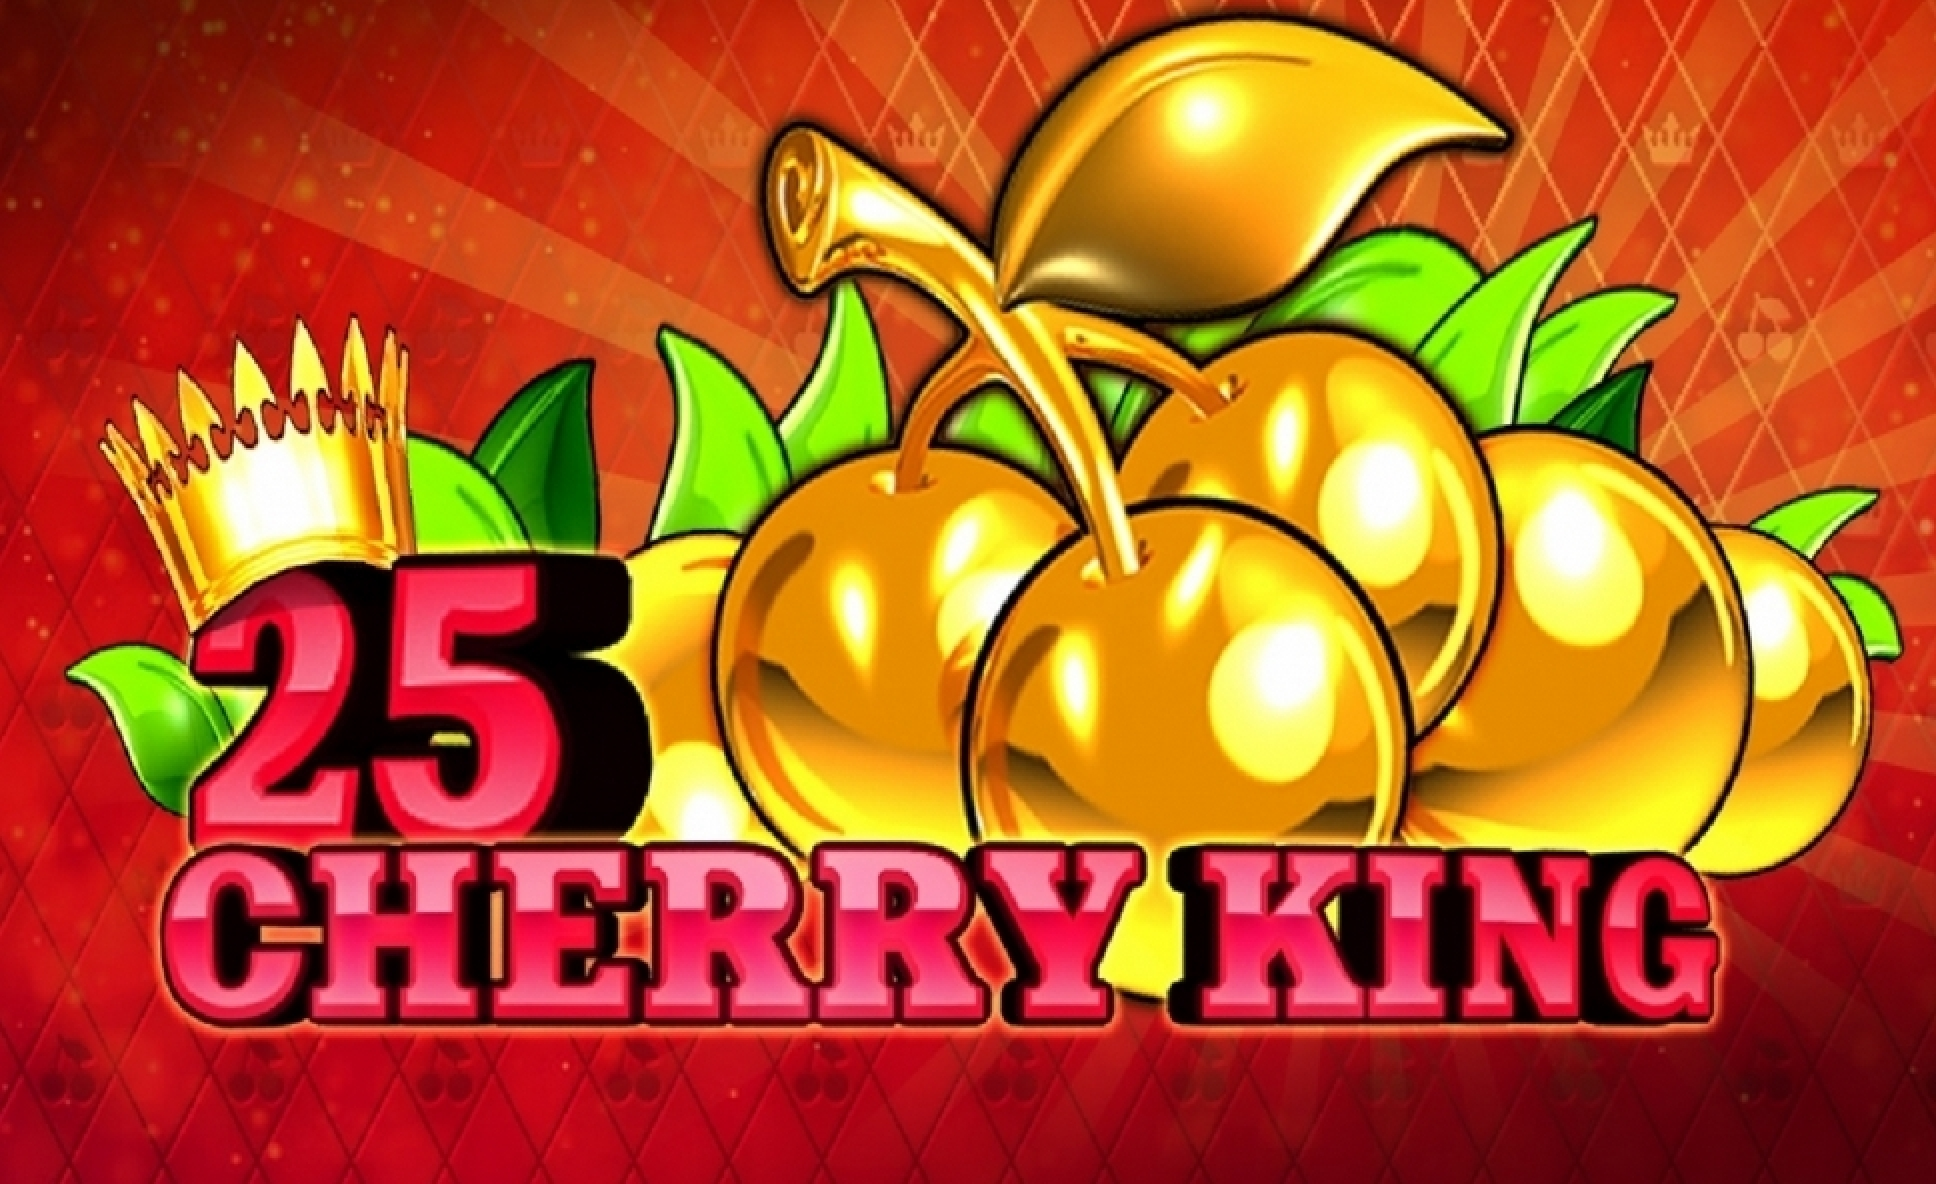 The 25 Cherry King Online Slot Demo Game by FUGA Gaming